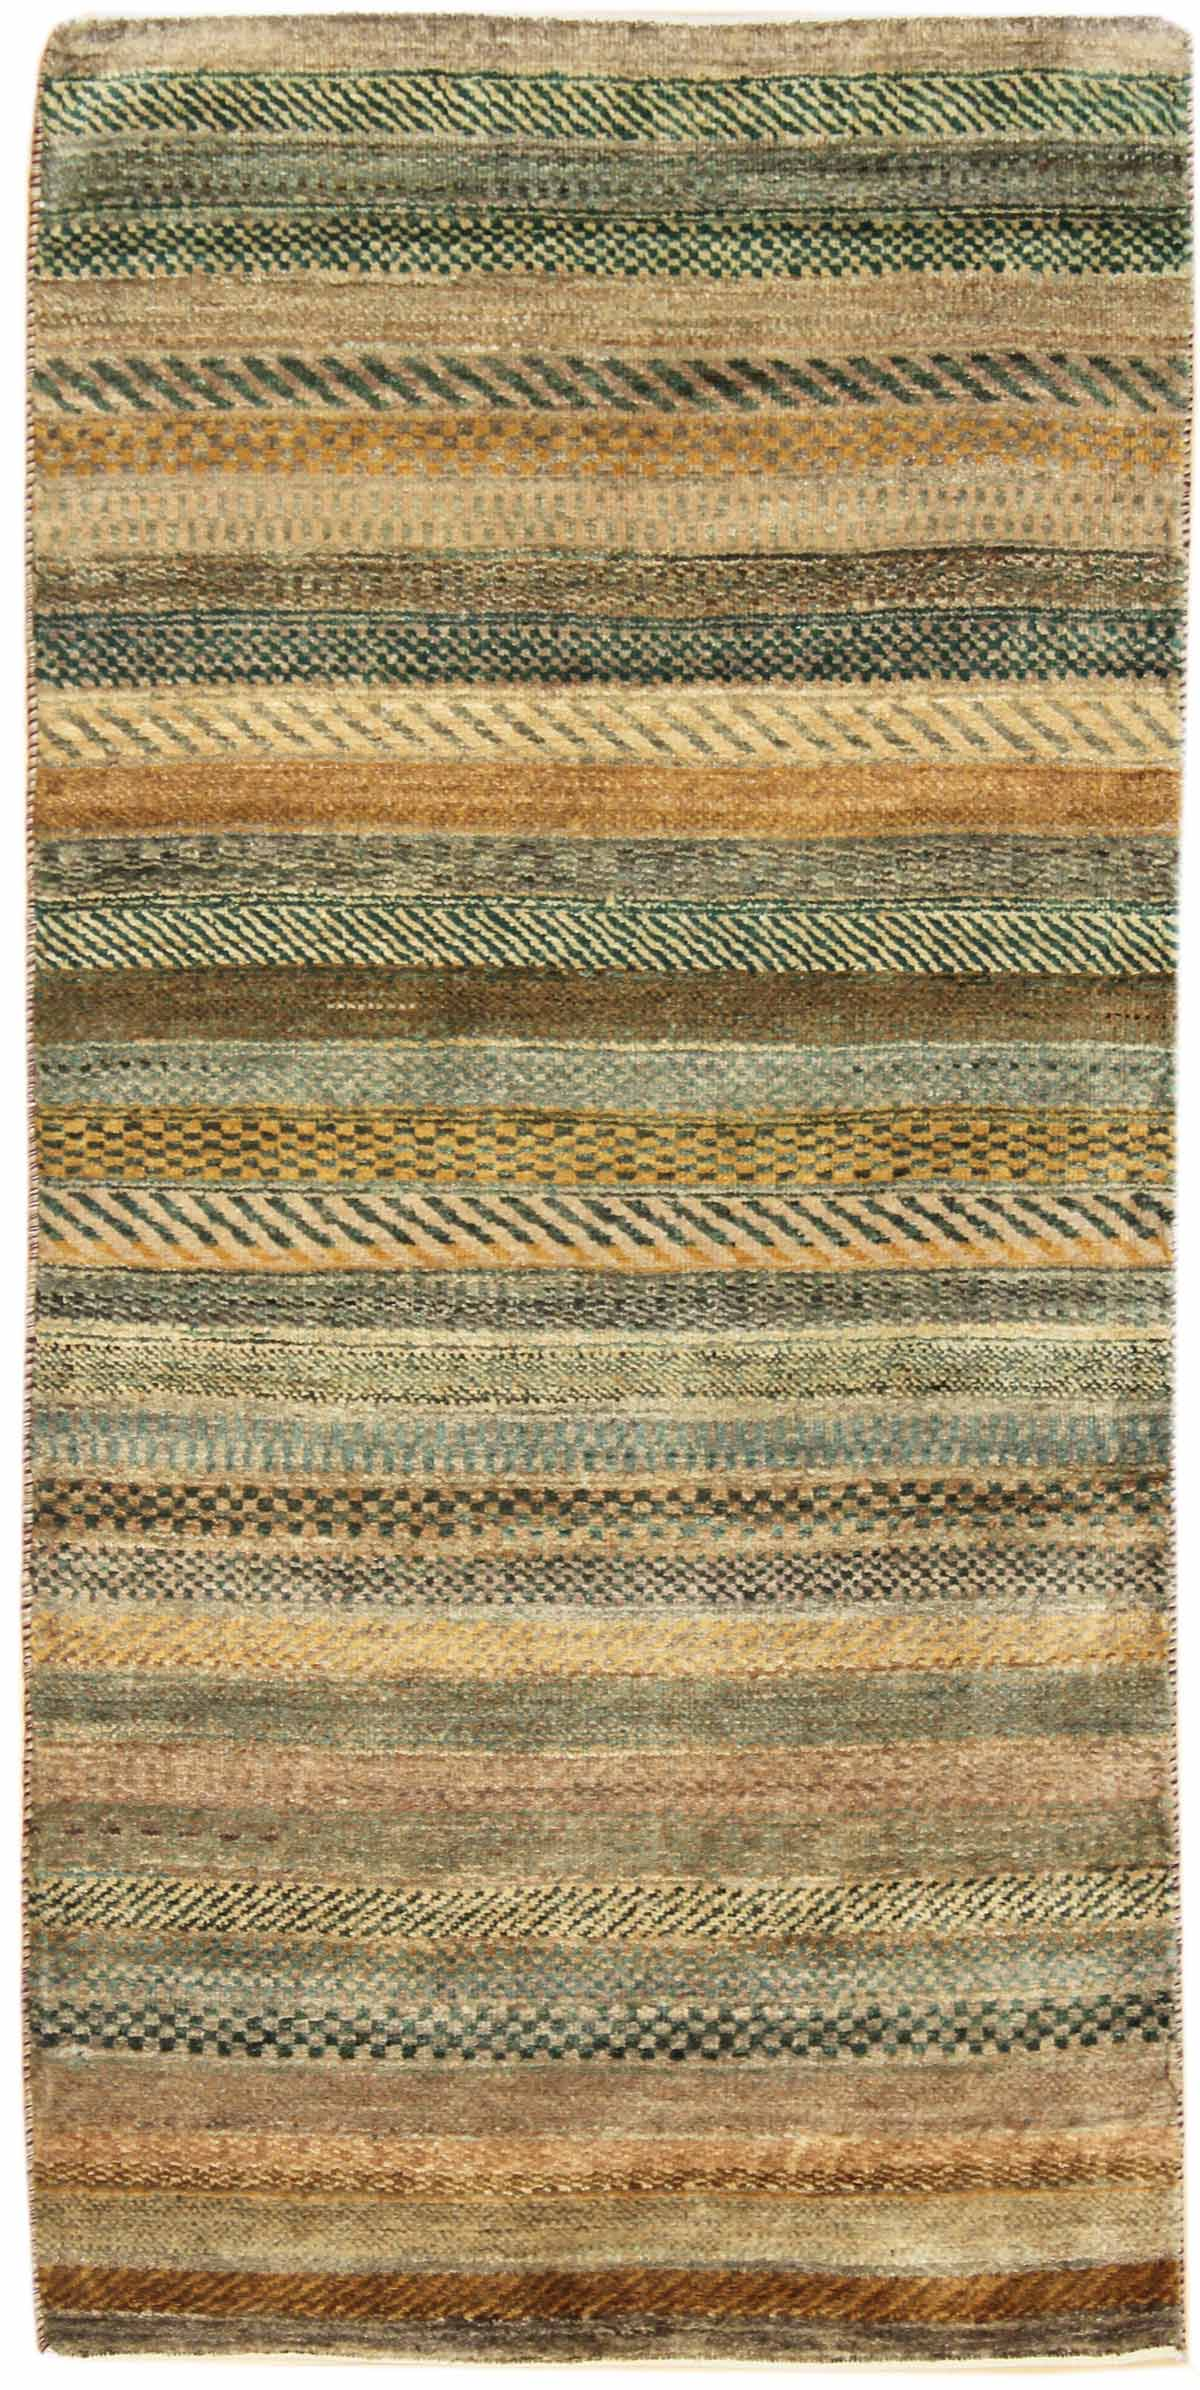 Stripes Handwoven Contemporary Rug